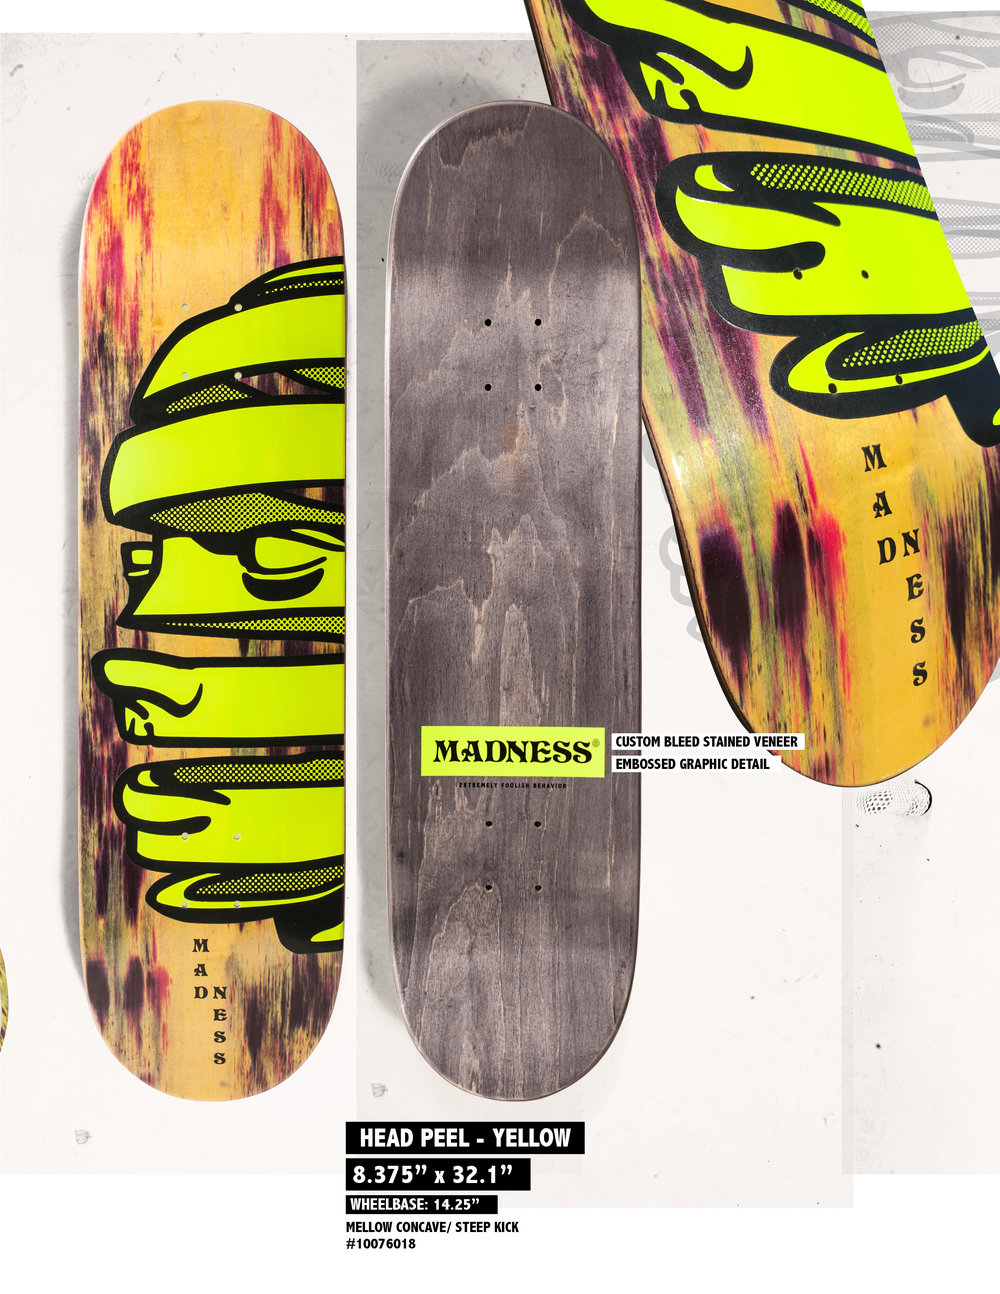 Madness_Spring_1919_Head_Peel_Skateboard_Deck.jpg